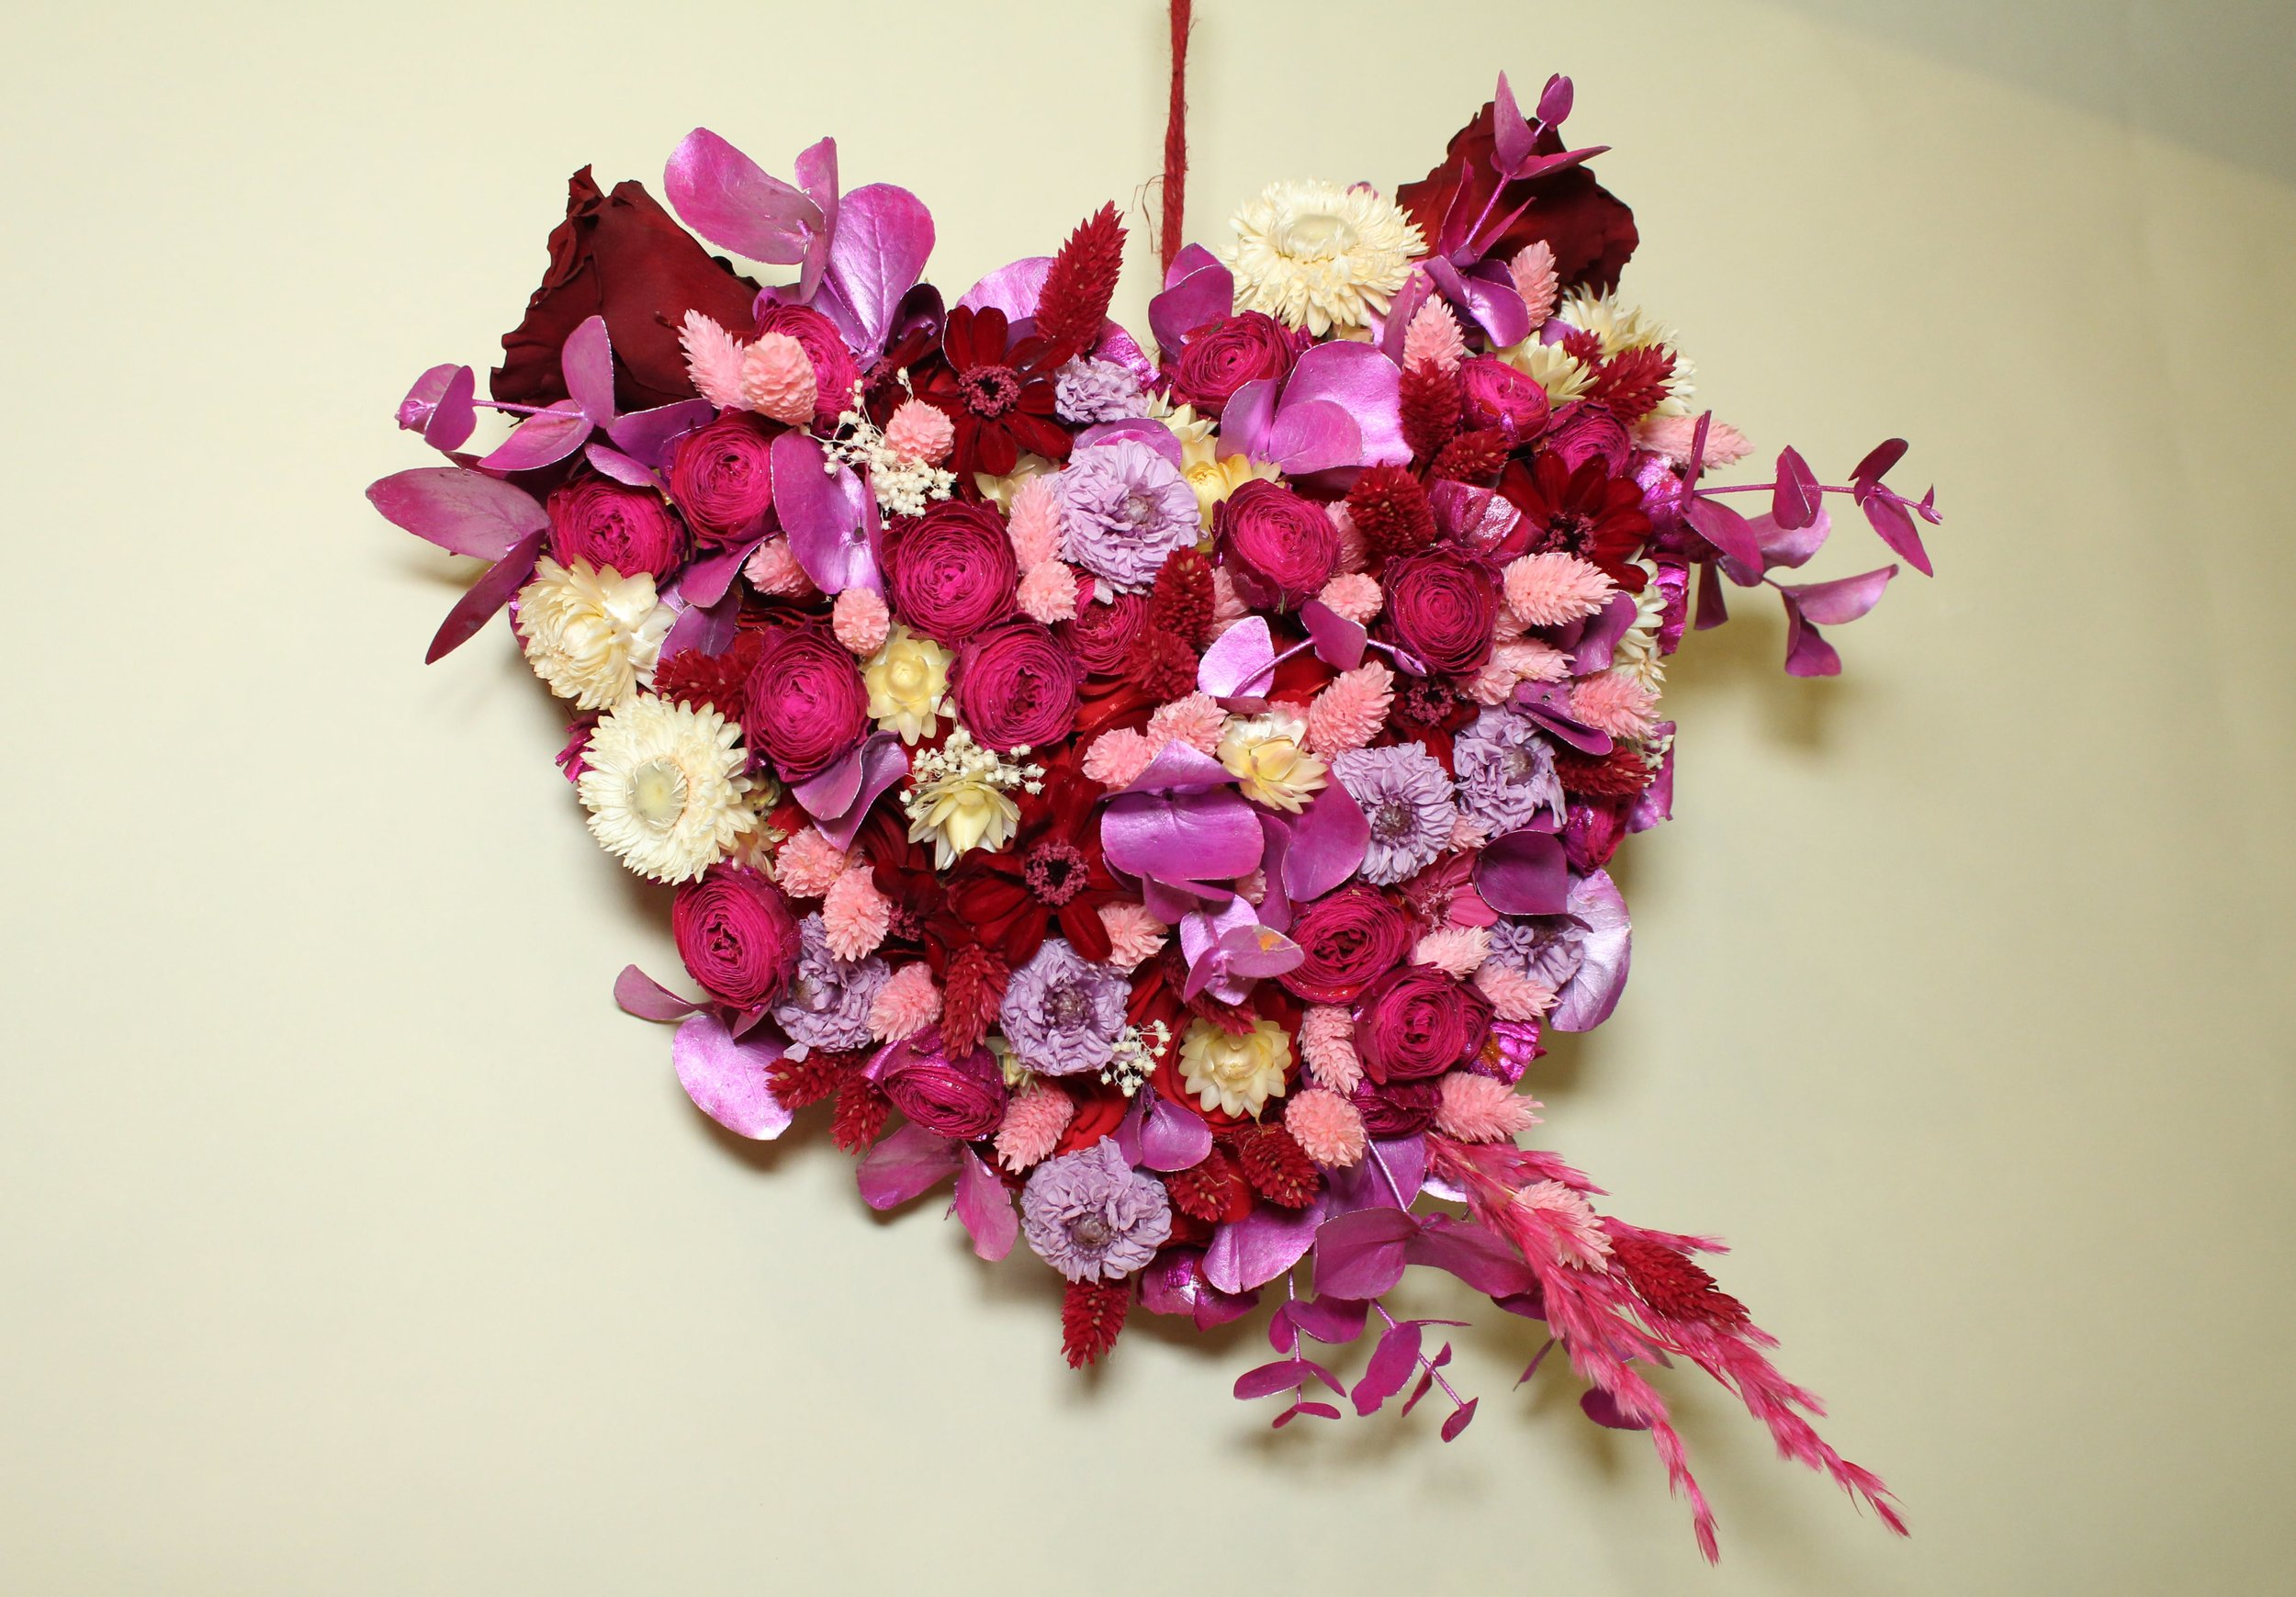 Copy of VALENTINE'S DAY WREATHS - B FLORAL